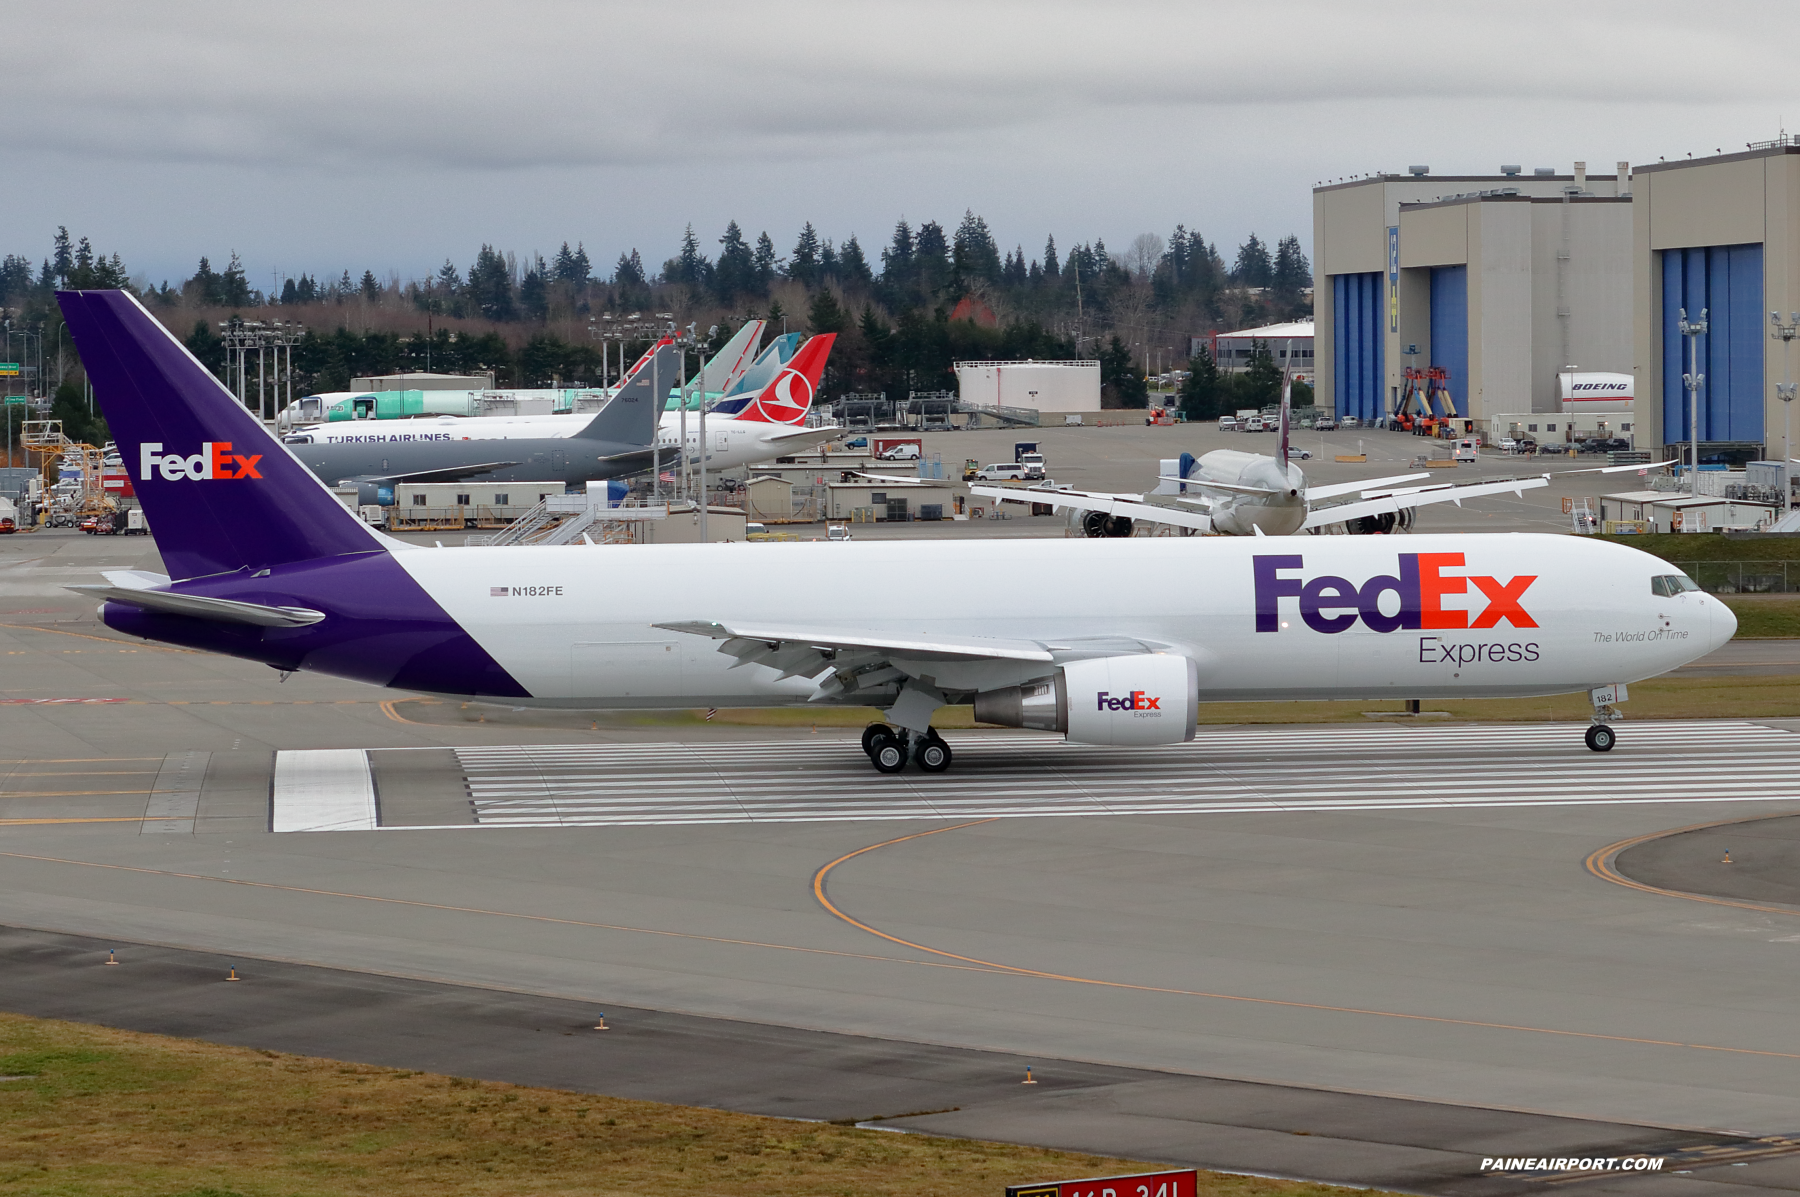 FedEx 767 N182FE at Paine Field